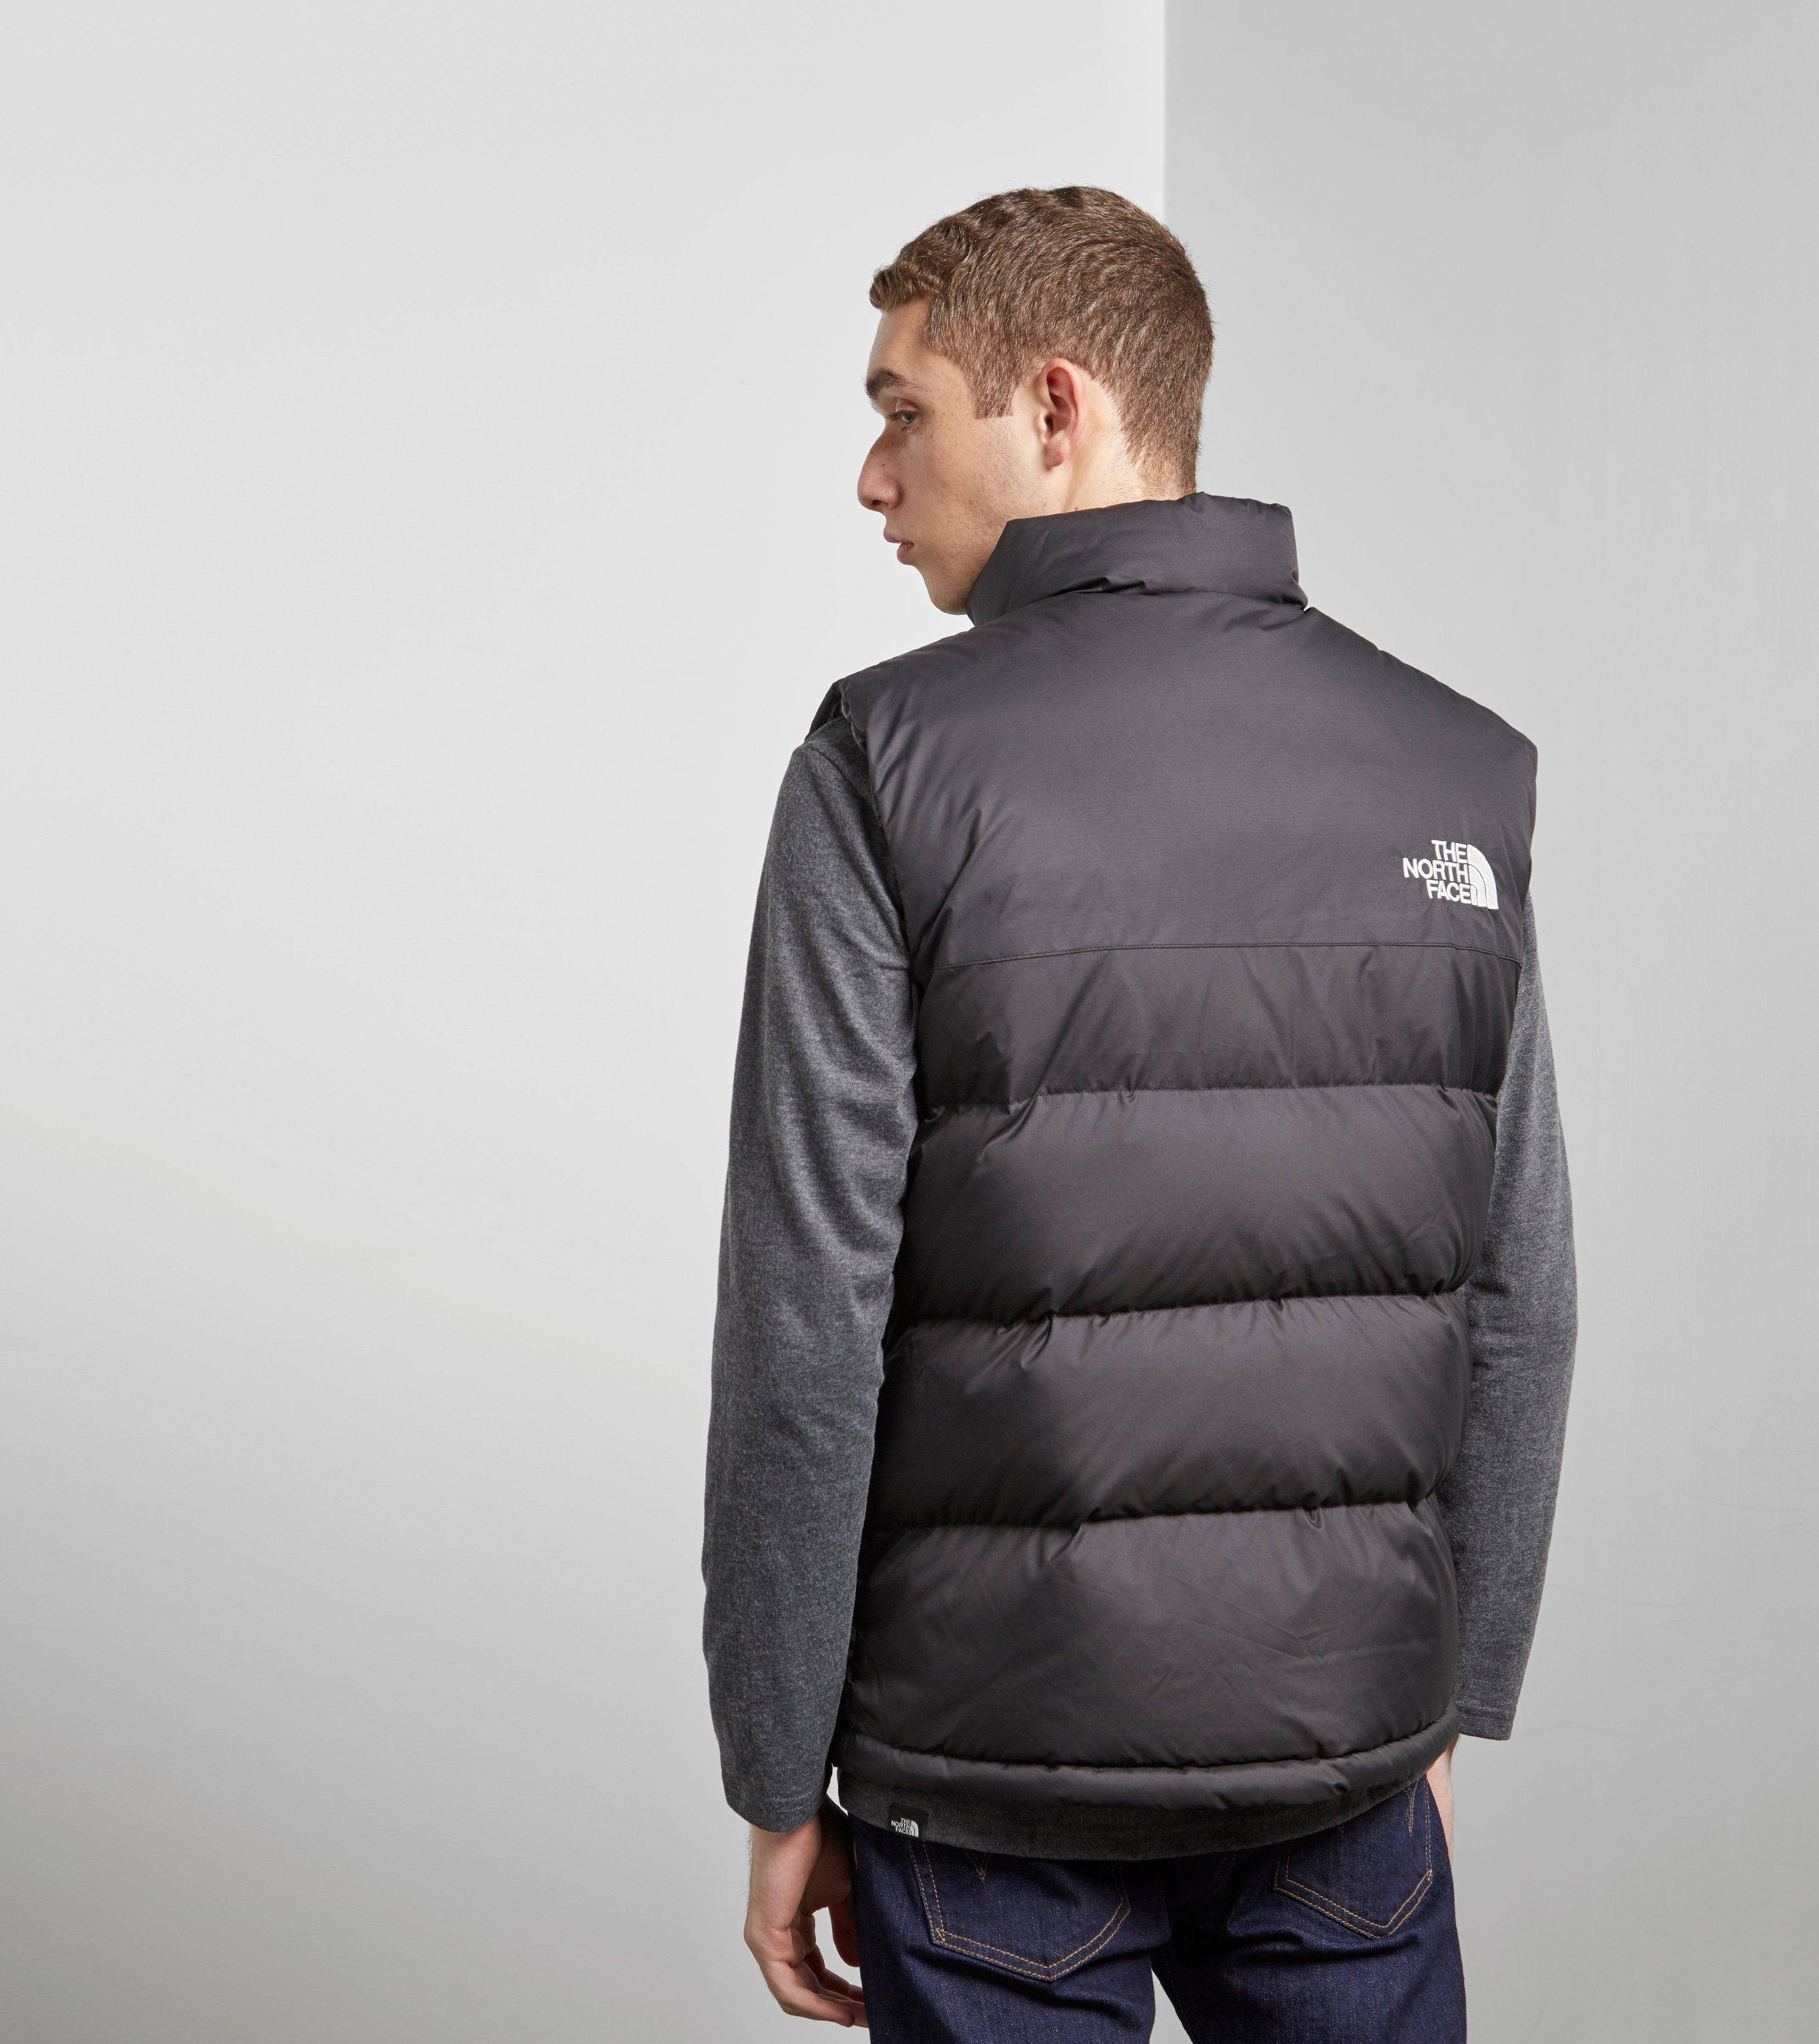 ... release date 85f1f c478c ... great site for all sneakers half off 51dc6  a1a77  info for 6d638 a6642 Lyst The North Face Novelty Nuptse Jacket ... dded218b2